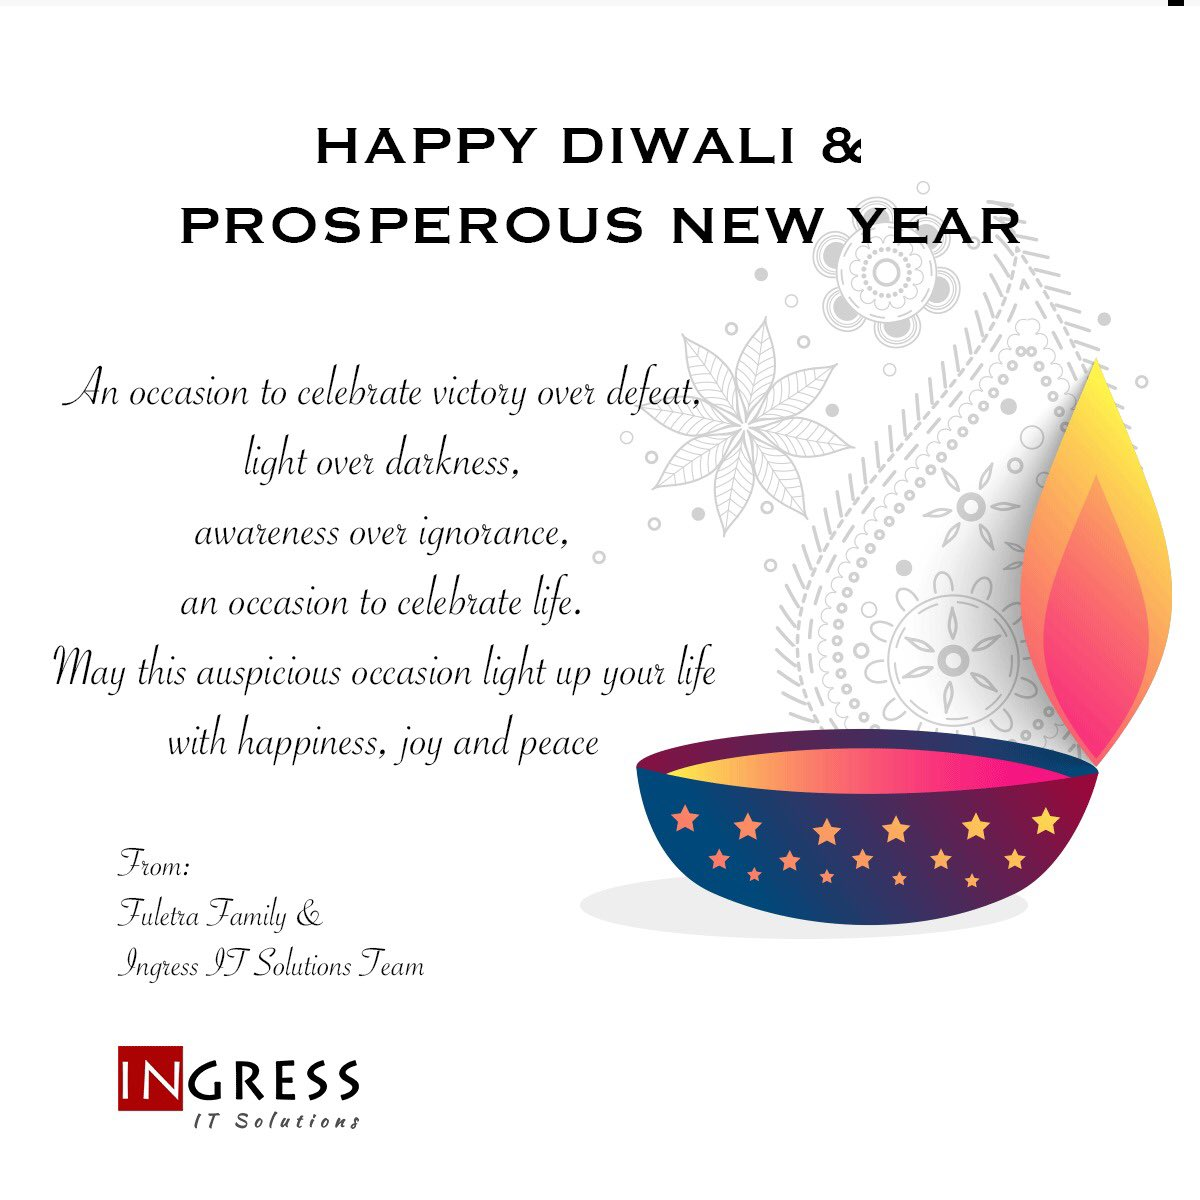 @IngressIT wishes you all a vey Happy Diwali https://t.co/CdiNNOoXzx